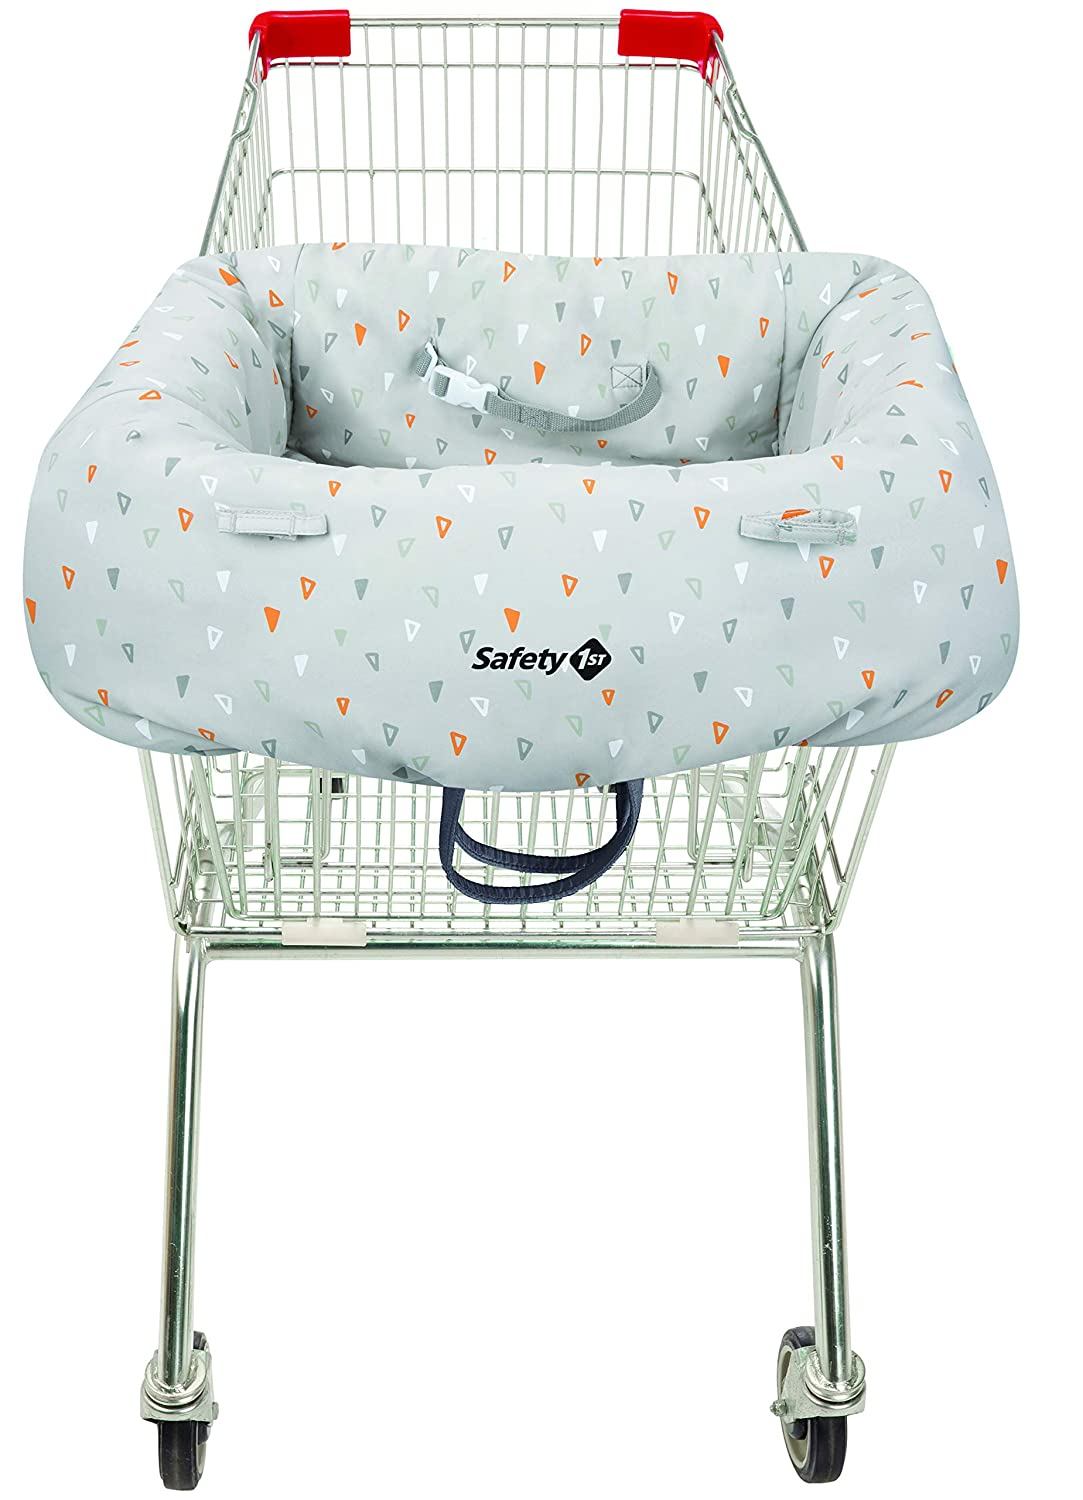 Safety 1st 2000191000/protege mueble Warm Grey